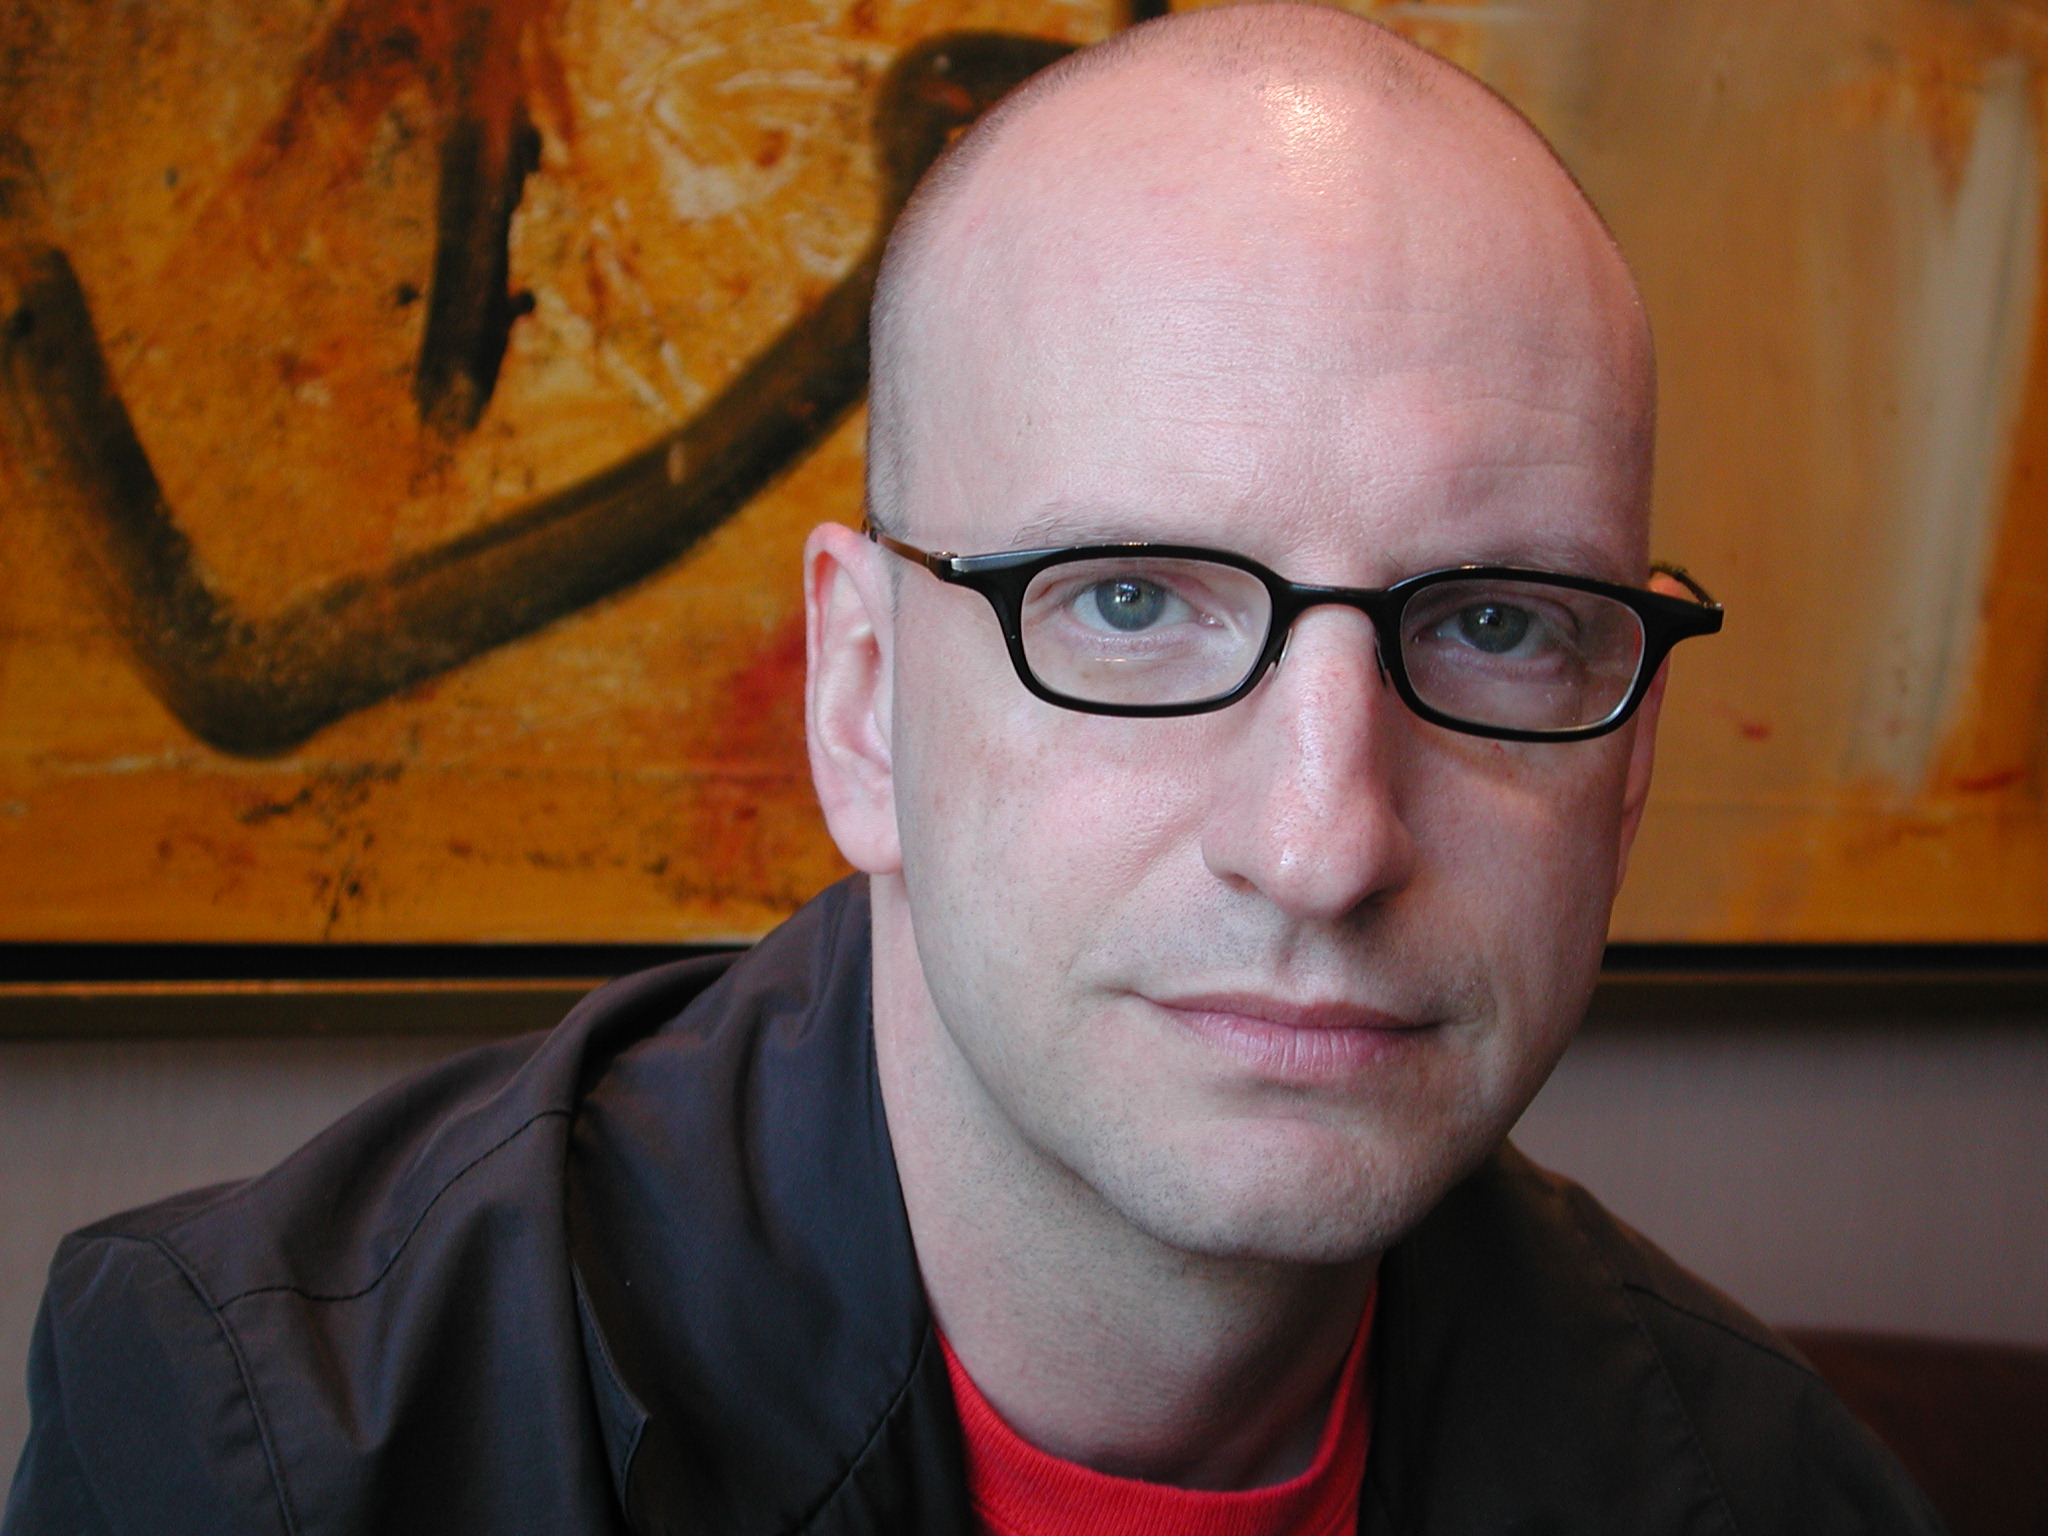 Creative conversation with filmmaker and storyteller Steven Soderbergh at Toronto's InterContinental Hotel